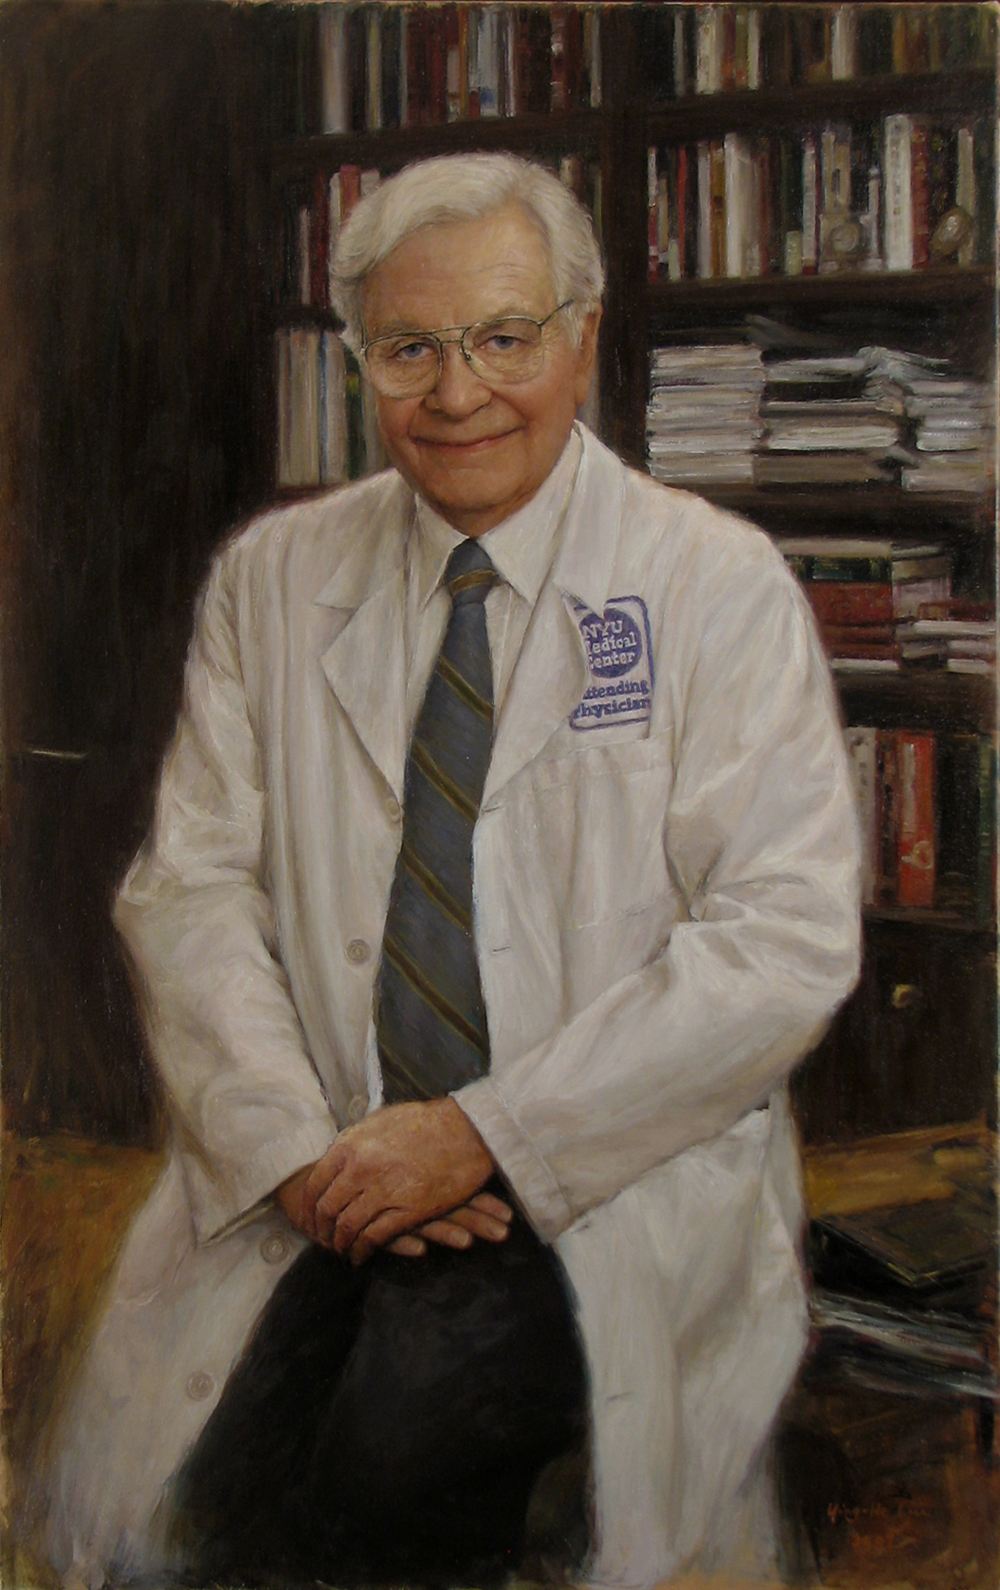 "Saul J. Farber, M.D., MACP Dean of New York University School of Medicine Provost of NYU Medicinal Center President Emeritus of the American College of Physicians Oil on linen 46""x29"""